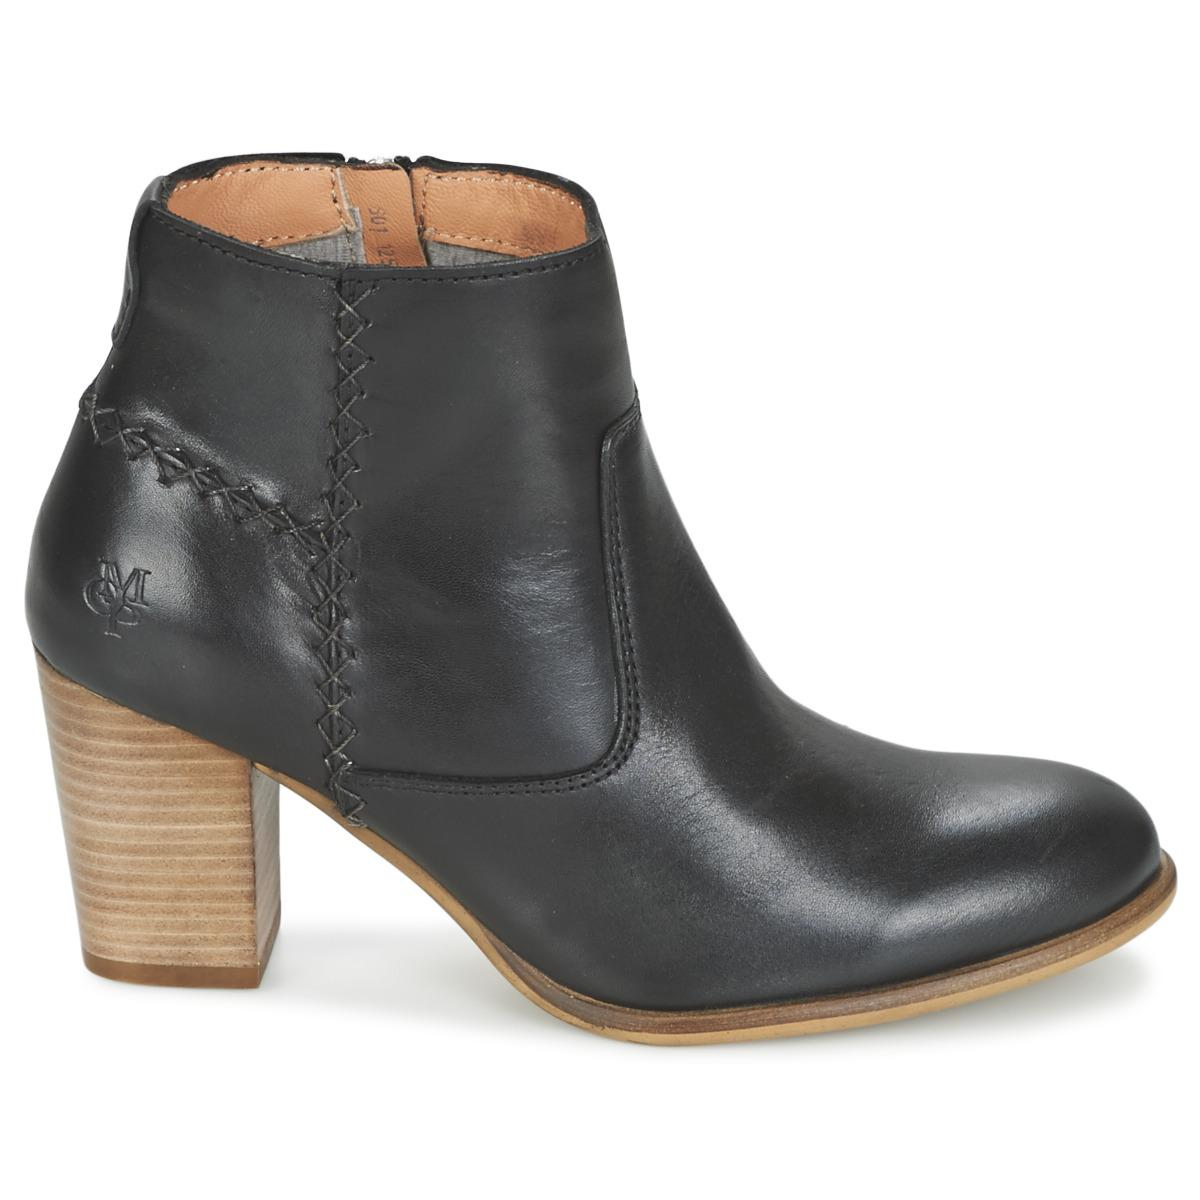 Marc O' Polo JADDI BAKA women's Low Ankle Boots in From China Cheap Online iDC5QN2T2